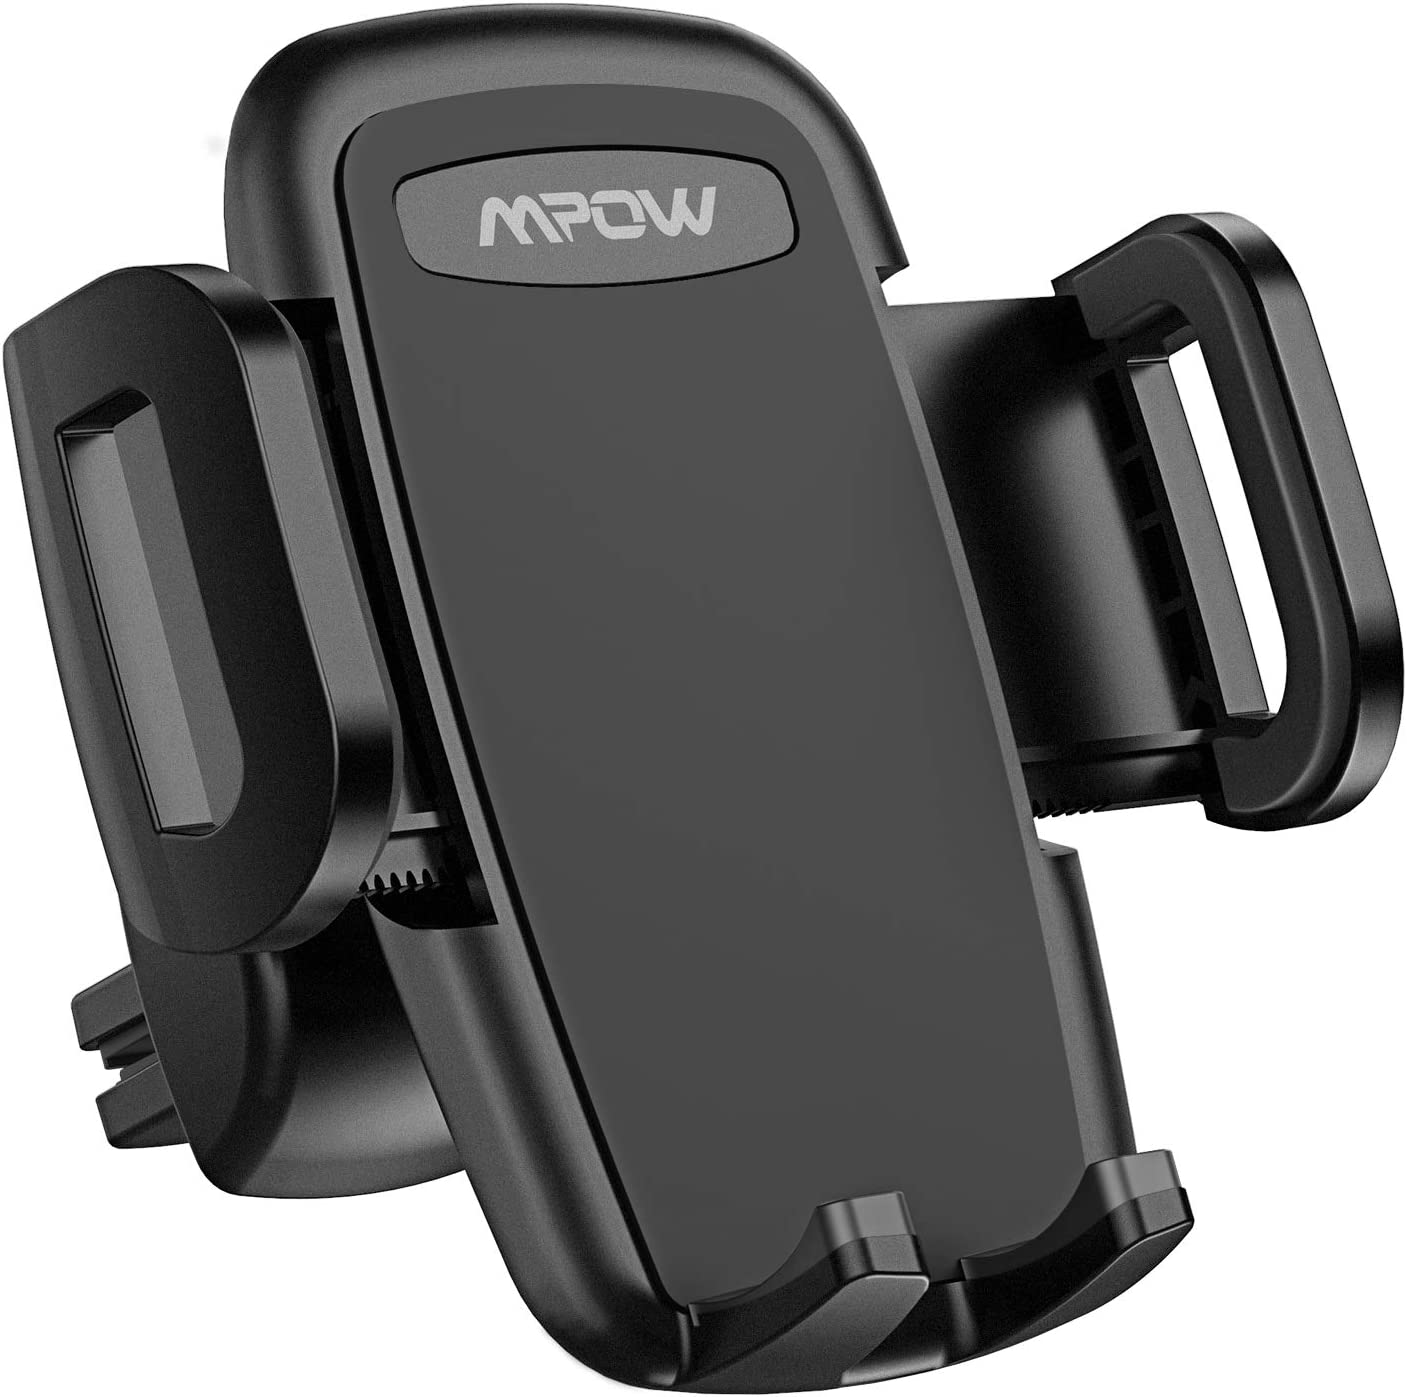 Best phone mounts for vertical vents, mpow vertical air vents phone mount